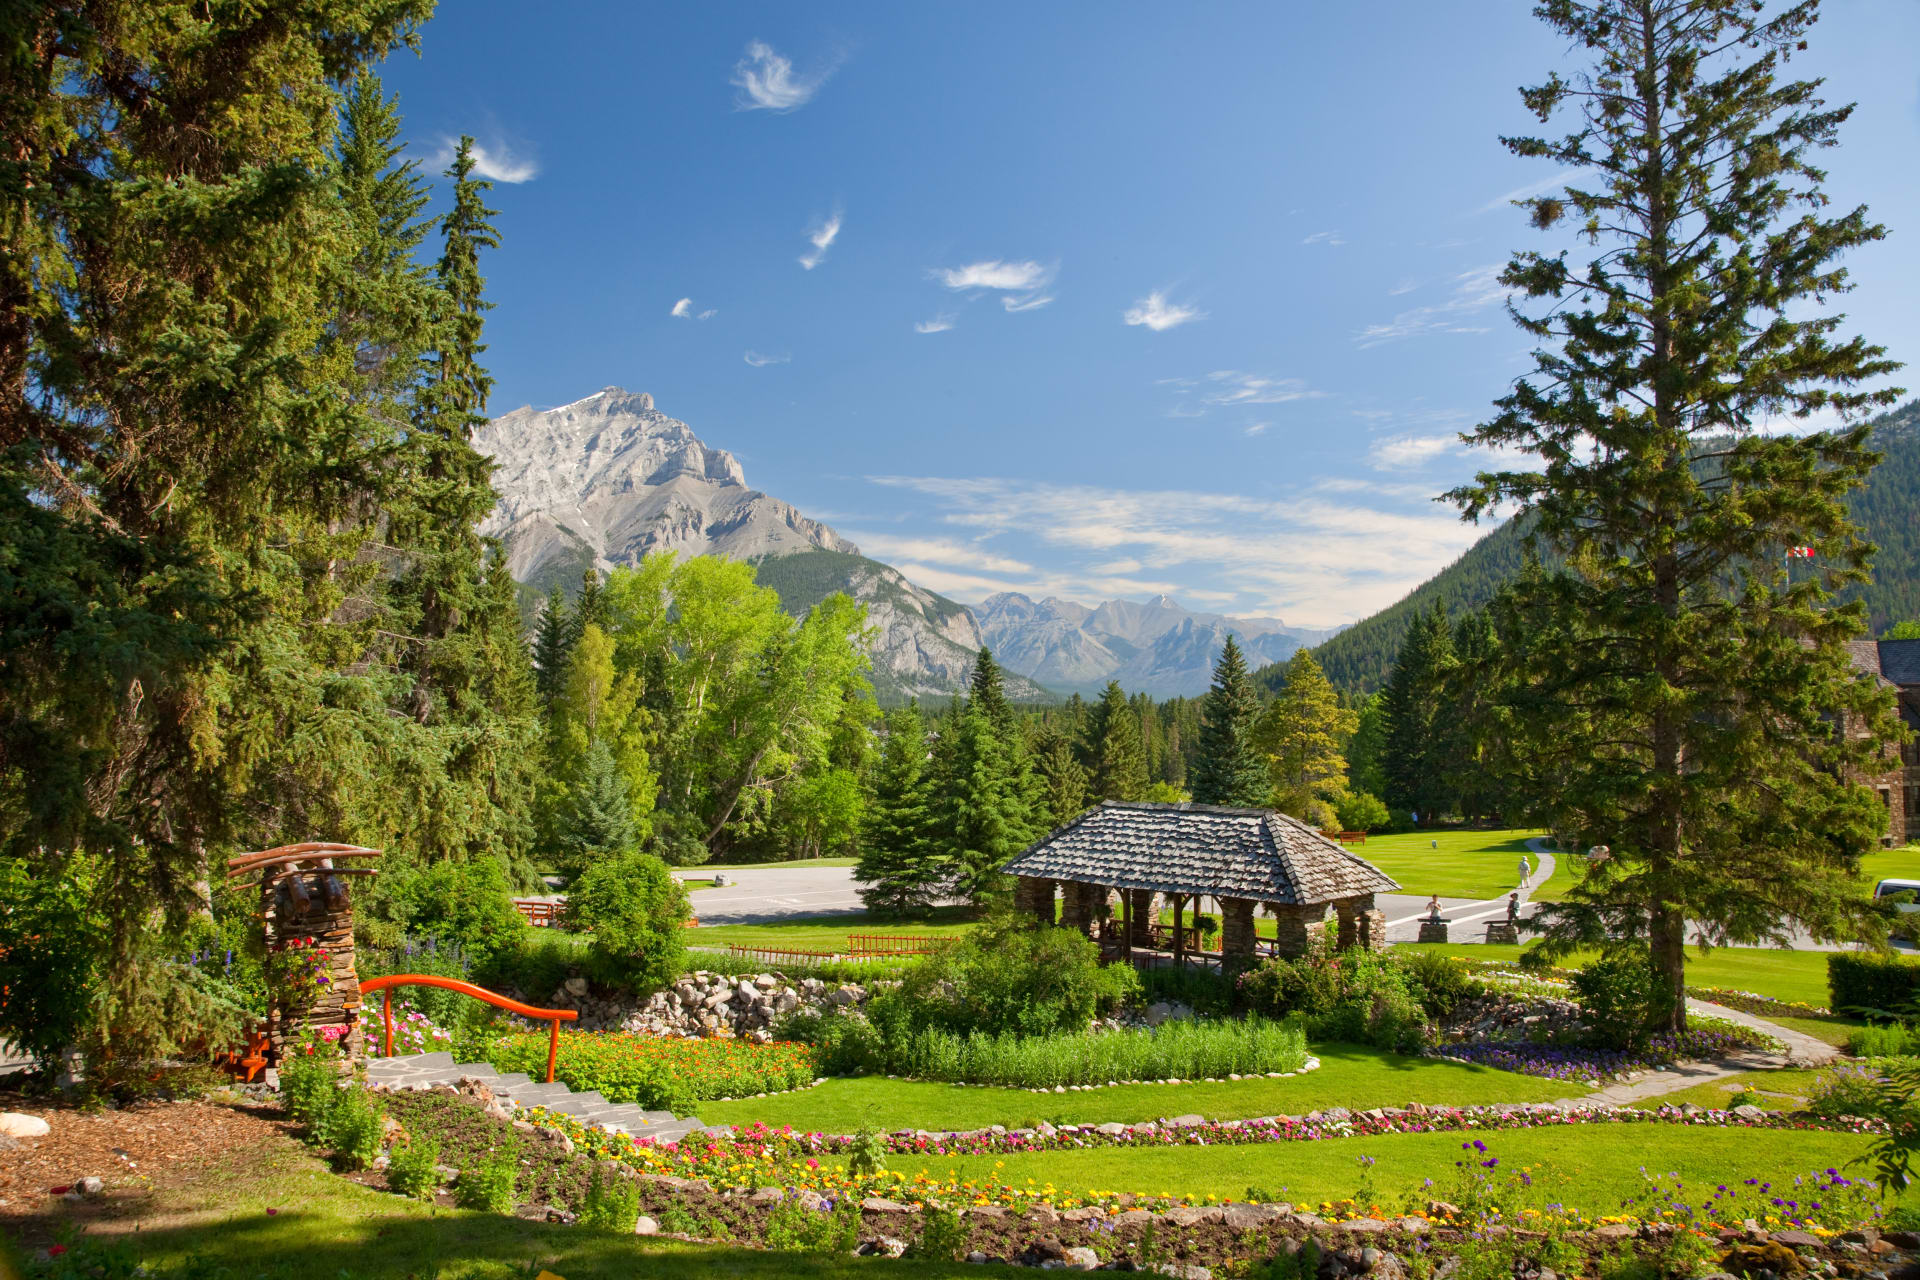 Banff - Iconic view of Banff from the peaceful Cascade Gardens